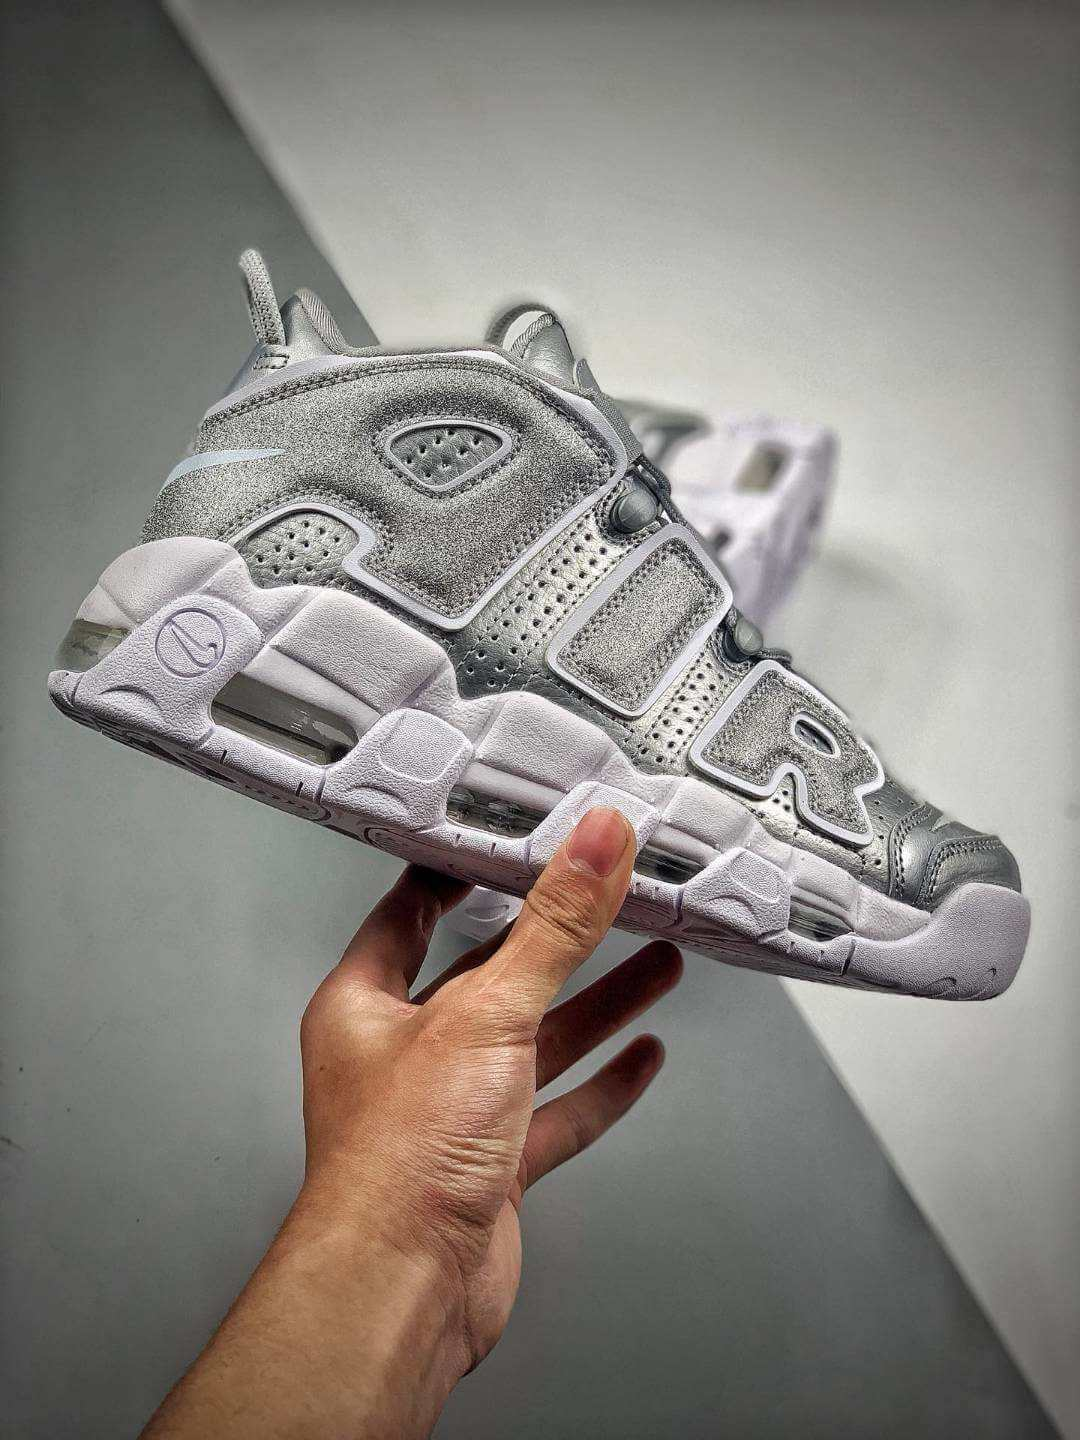 The Nike Air More Uptempo Loud and Clear Basketball Shoes Metallic Silver Leather Upper Quality RepSneaker 02